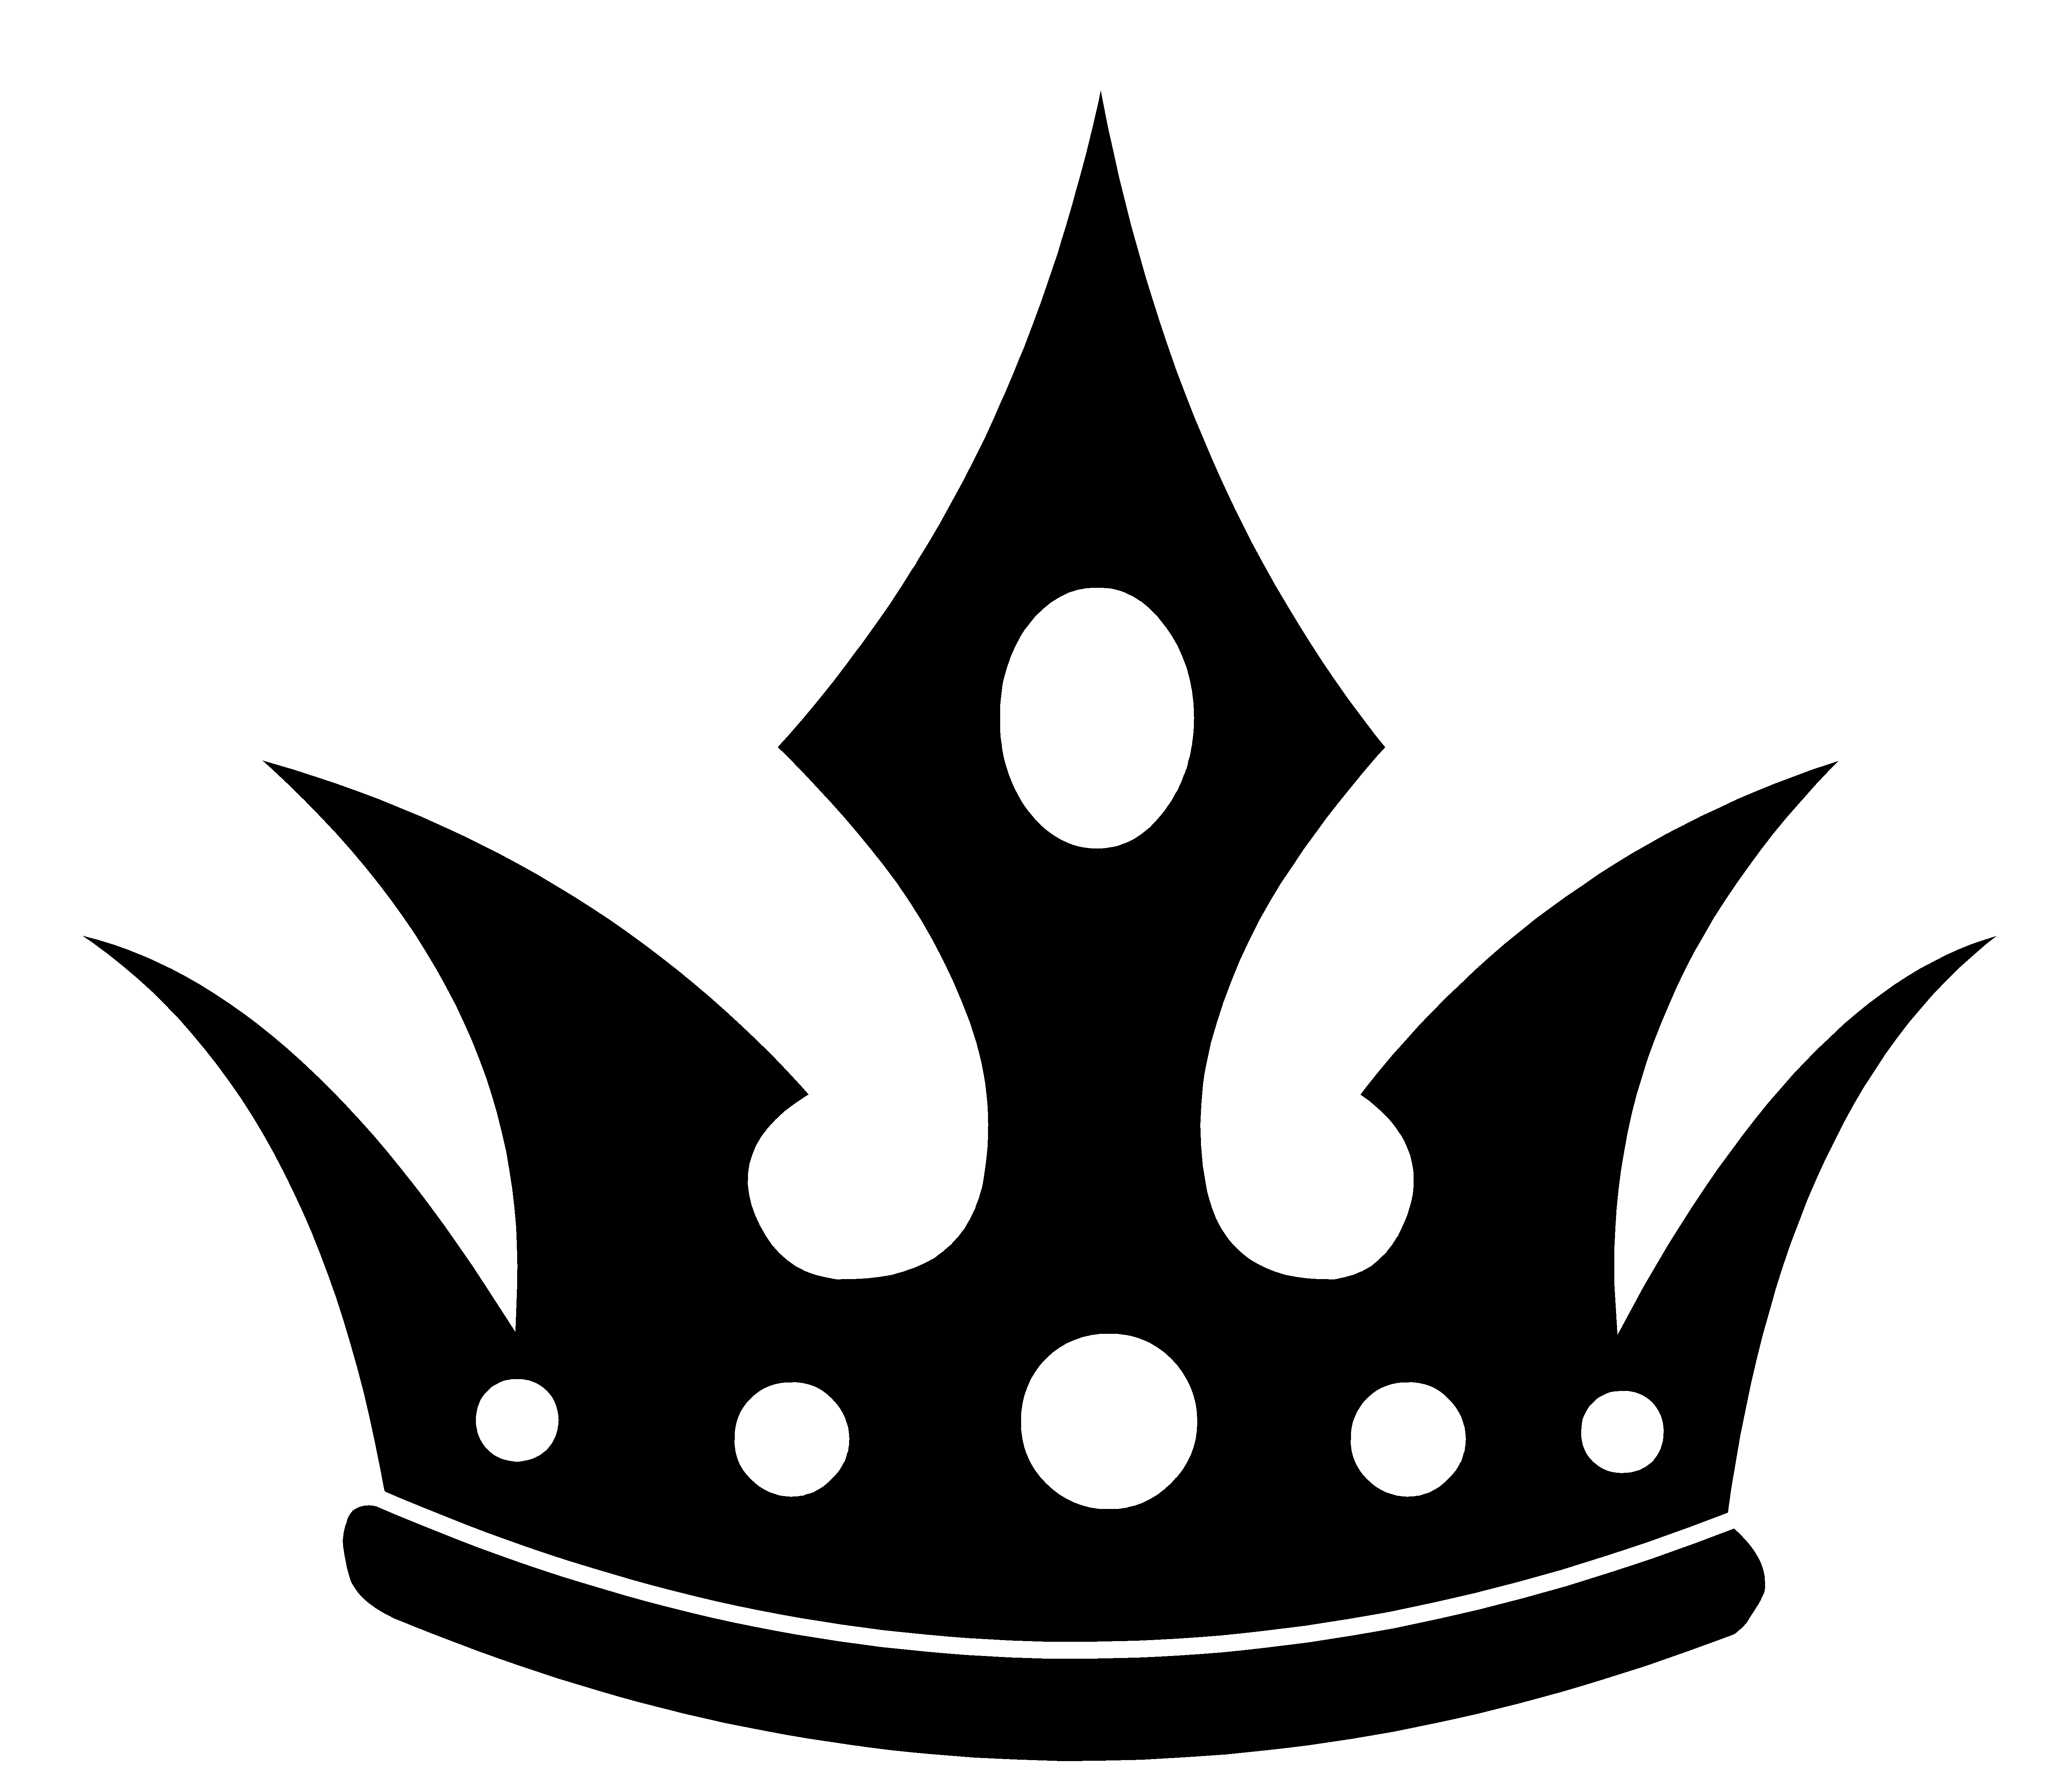 free black and white crown clipart - photo #4